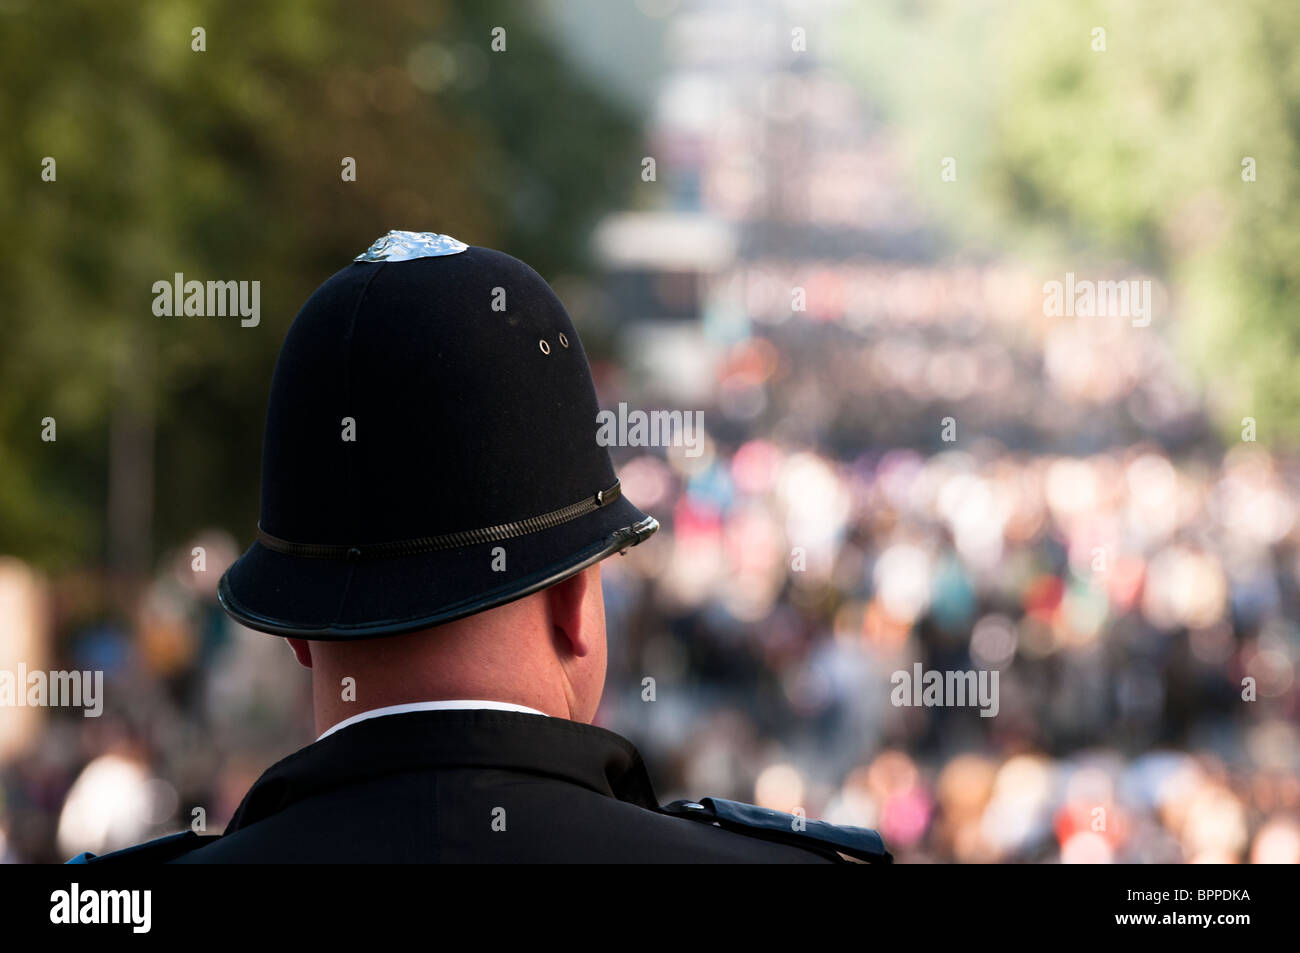 Policeman at the Notting Hill Carnival - Stock Image